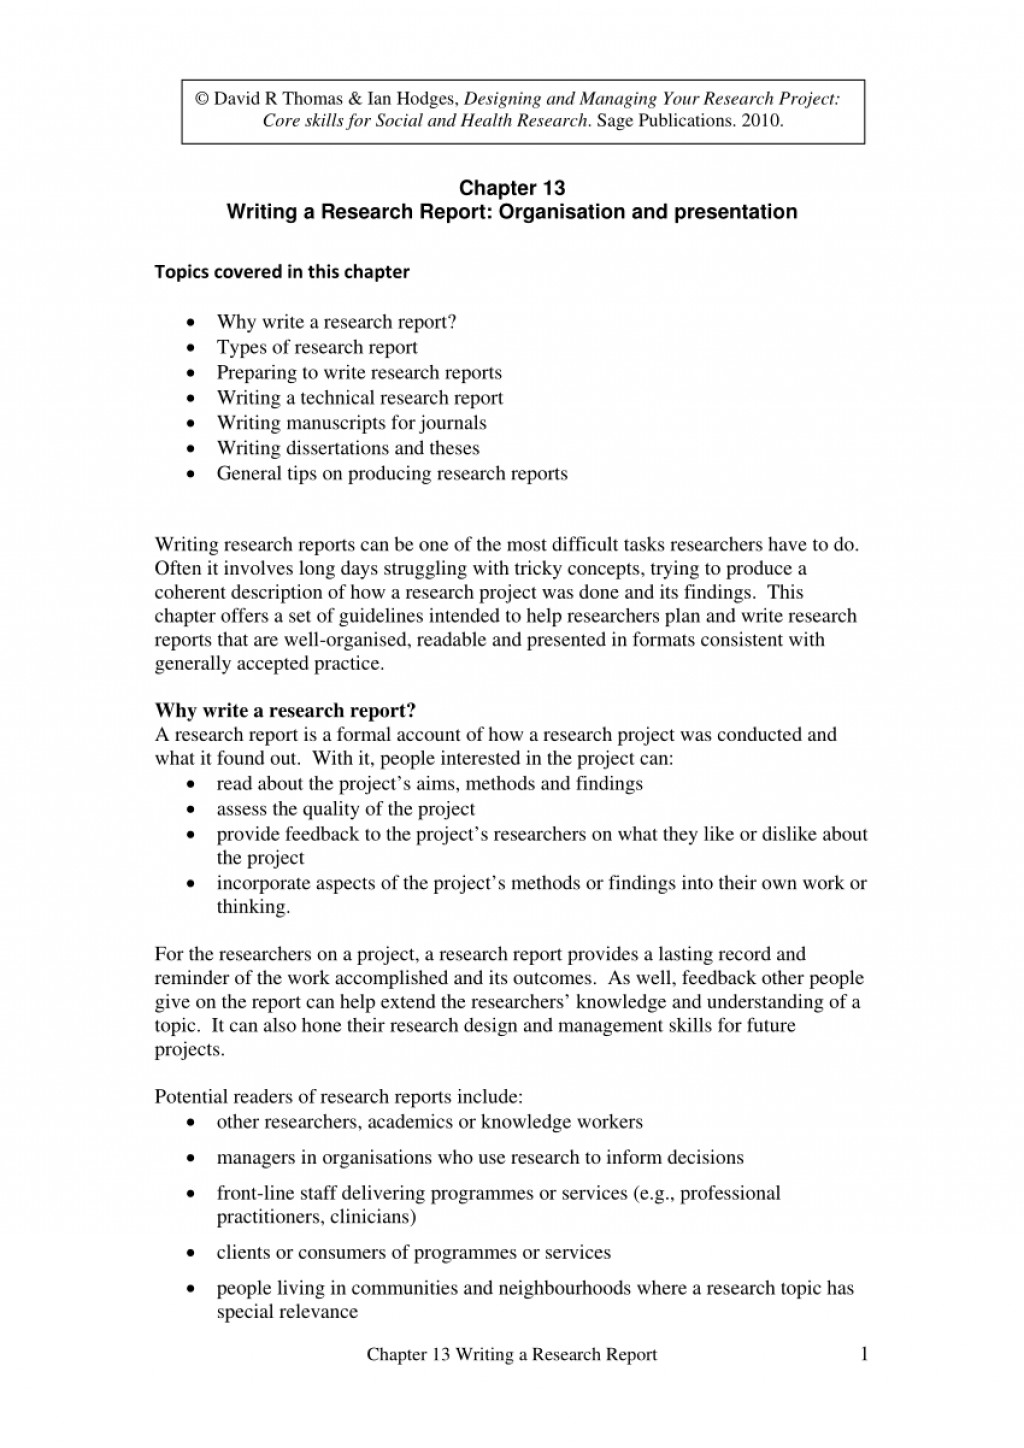 008 How To Do Research Paper Presentation Unusual Start An Oral On A Make Ppt For Large